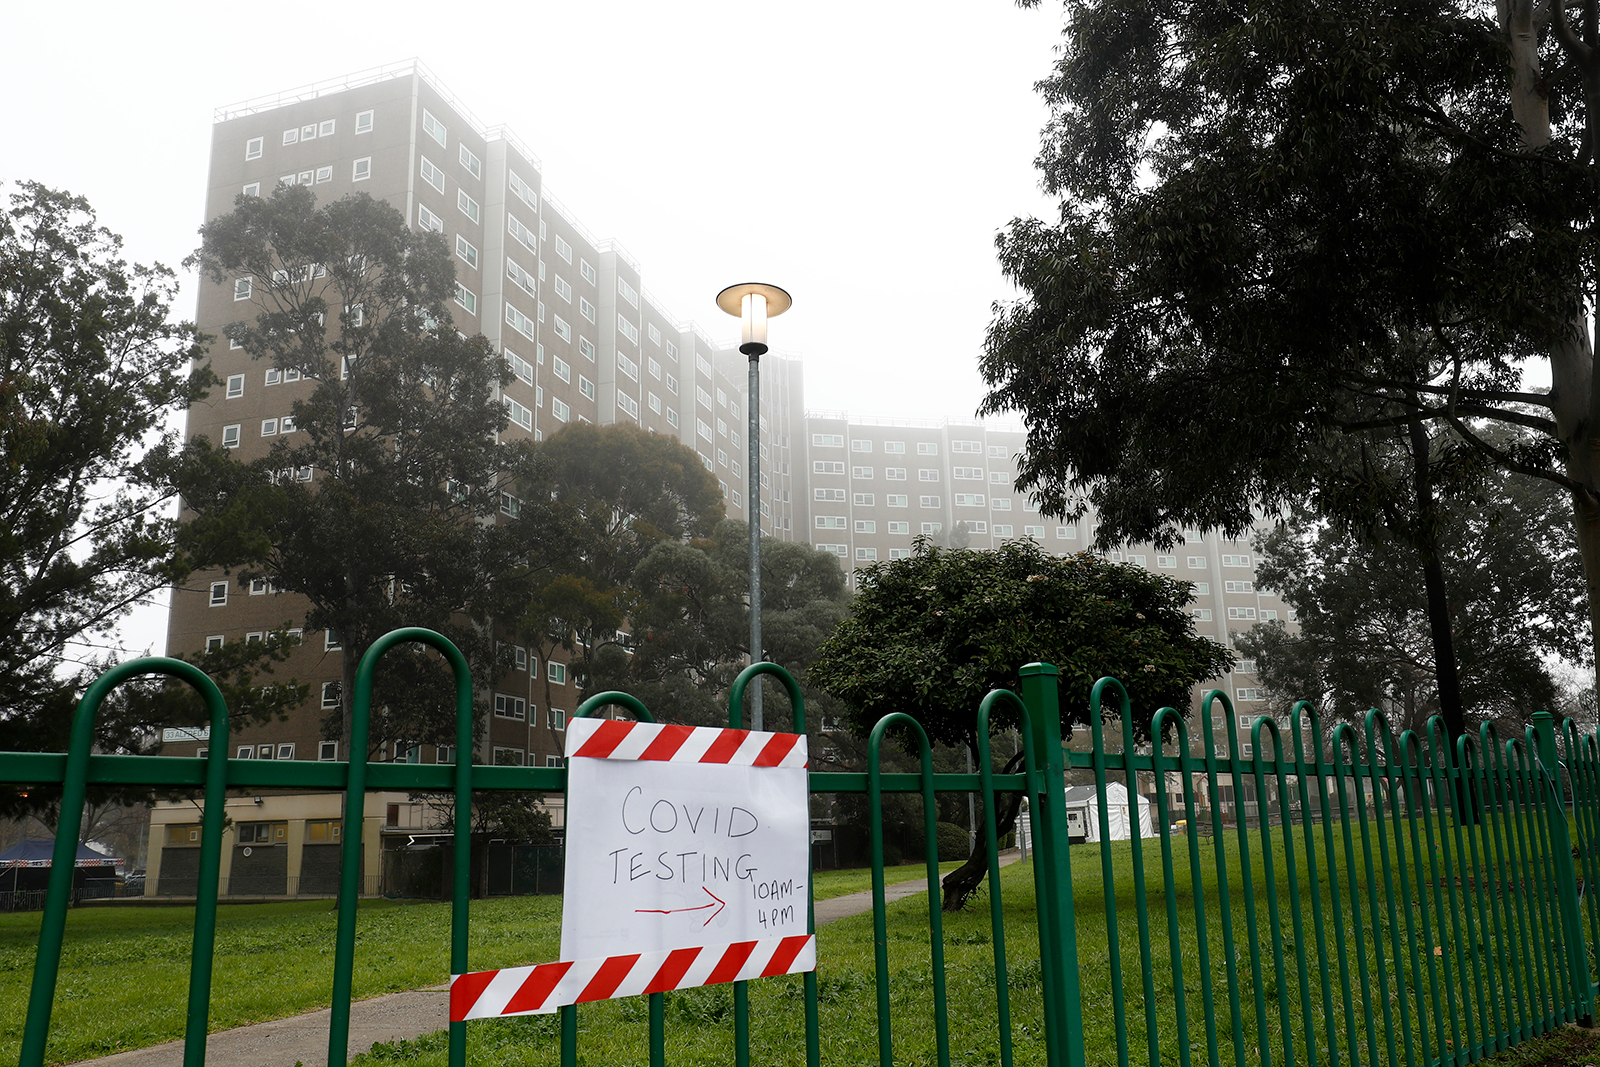 A general view of a housing complex during lockdown due to Covid-19 in Melbourne, Australia on July 17.